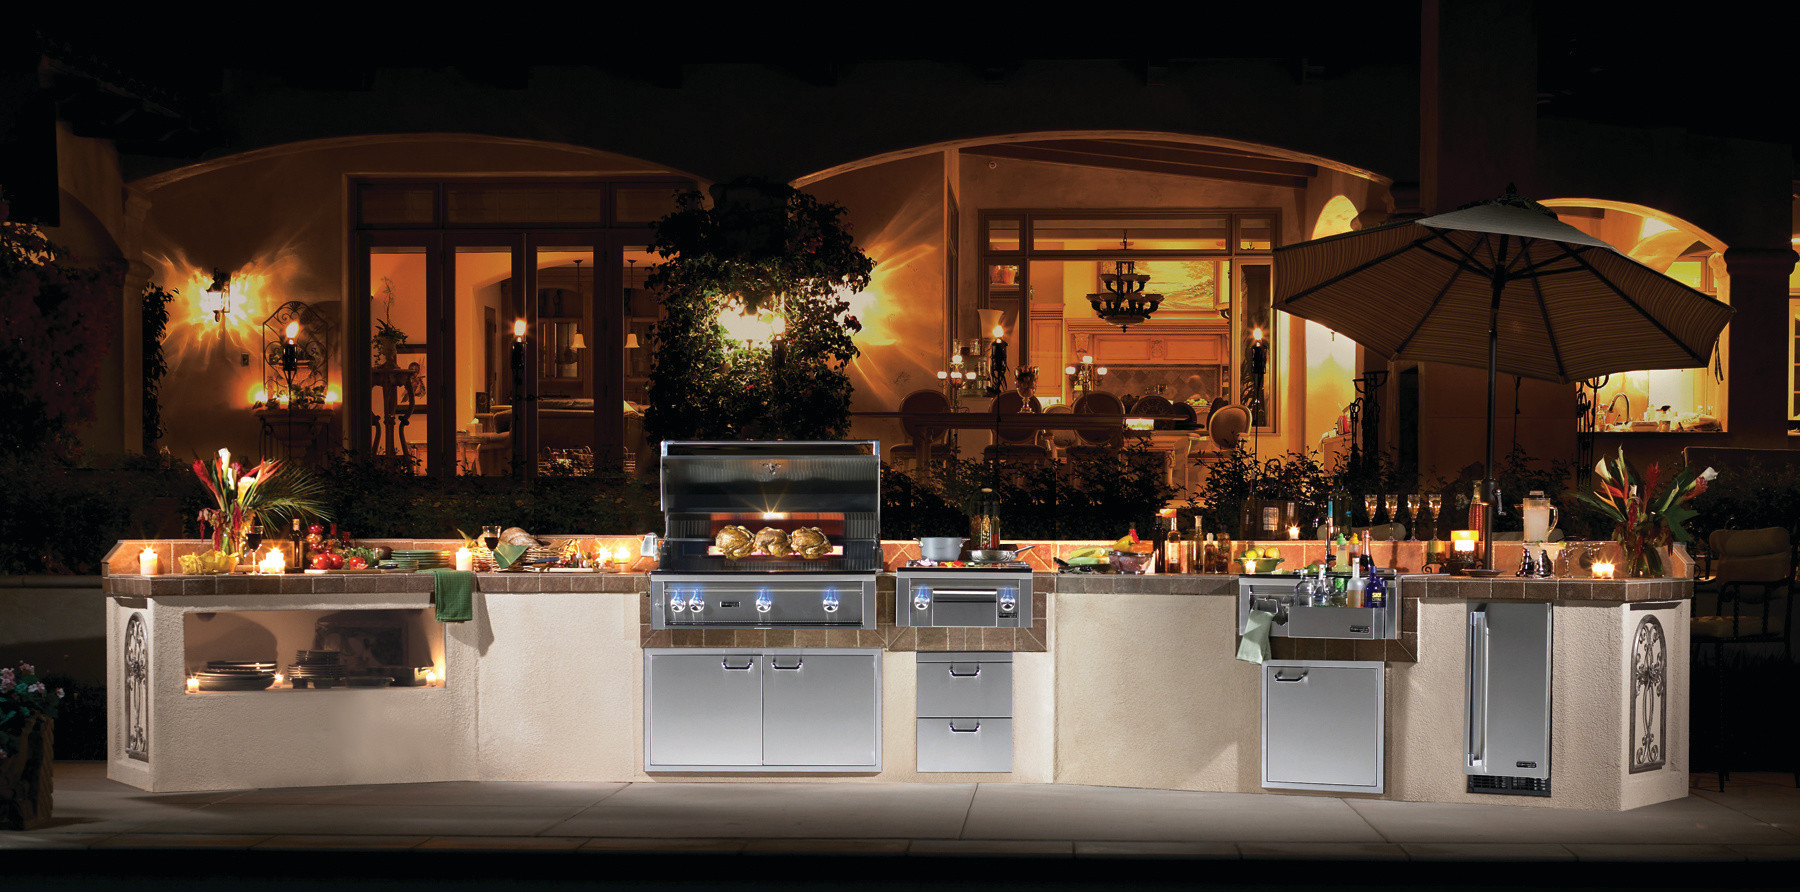 Lynx Outdoor Kitchen from Kitchen in the